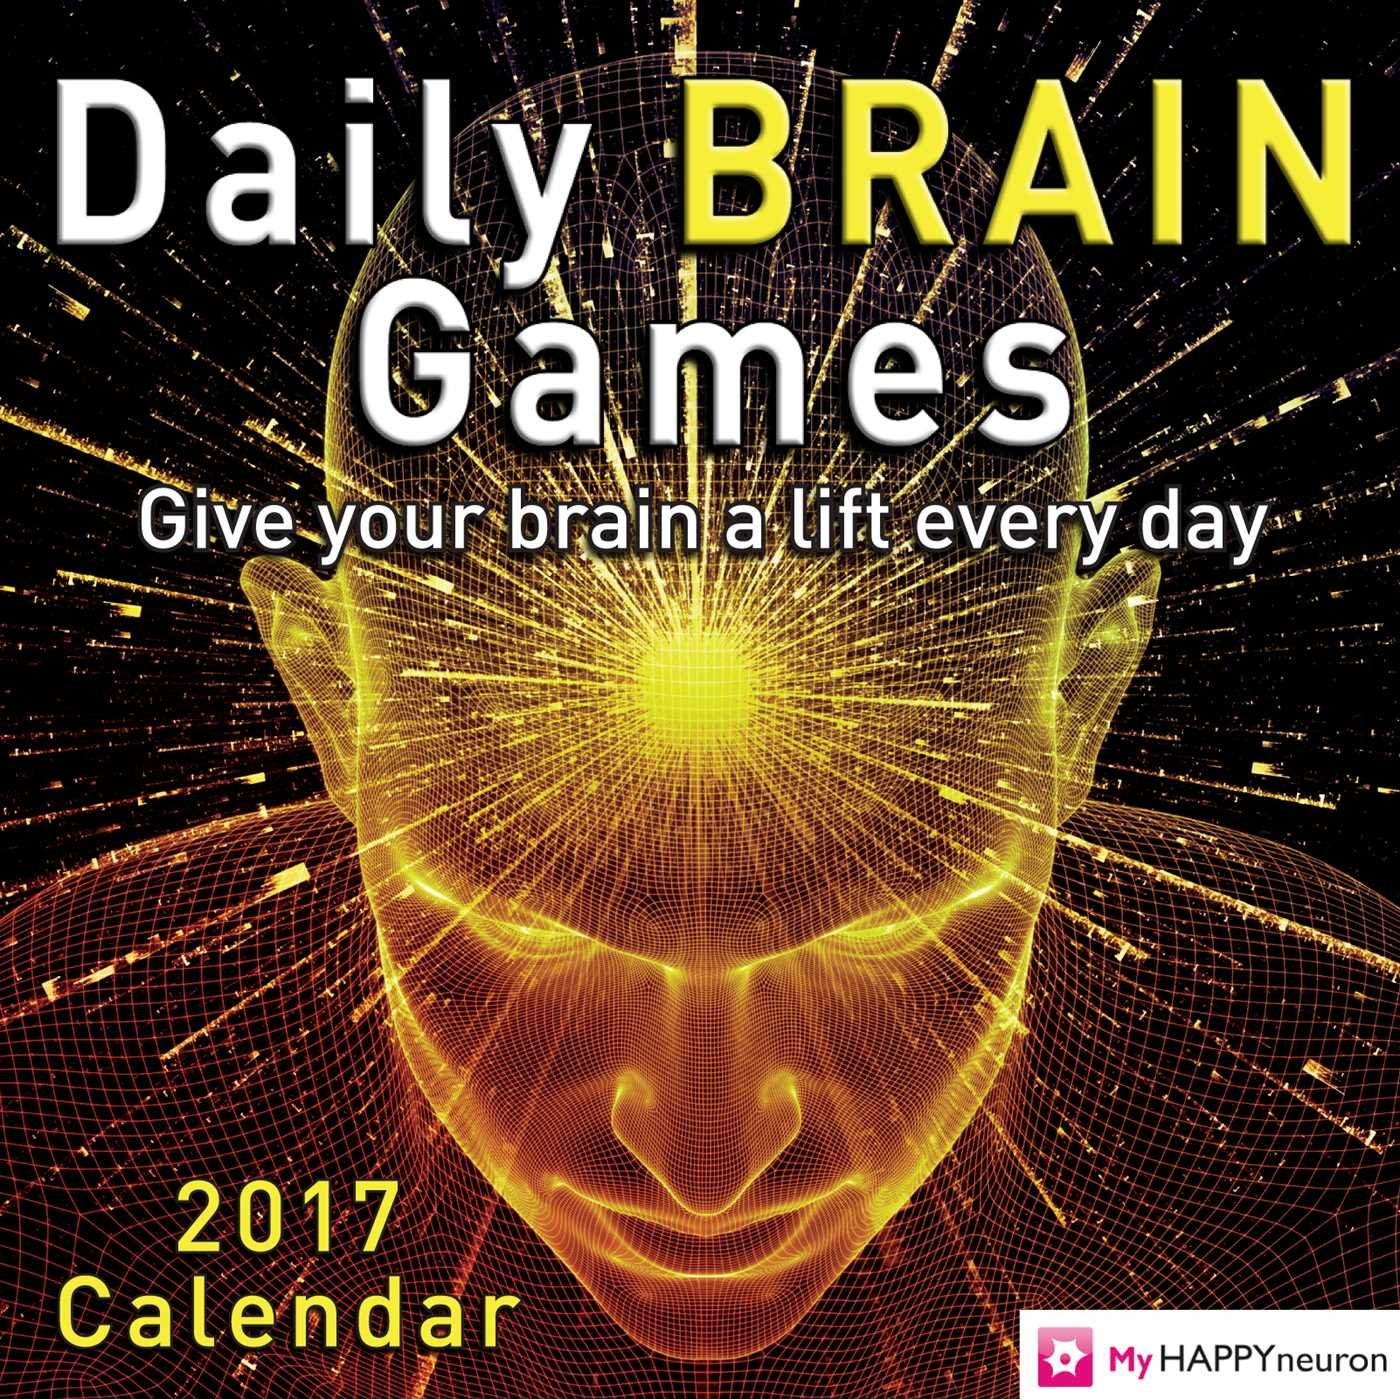 Daily Brain Games 2017 Day-to-Day Calendar Calendar – Day to Day Calendar, June 14, 2016 HAPPYneuron Andrews McMeel Publishing 1449476627 Calendars